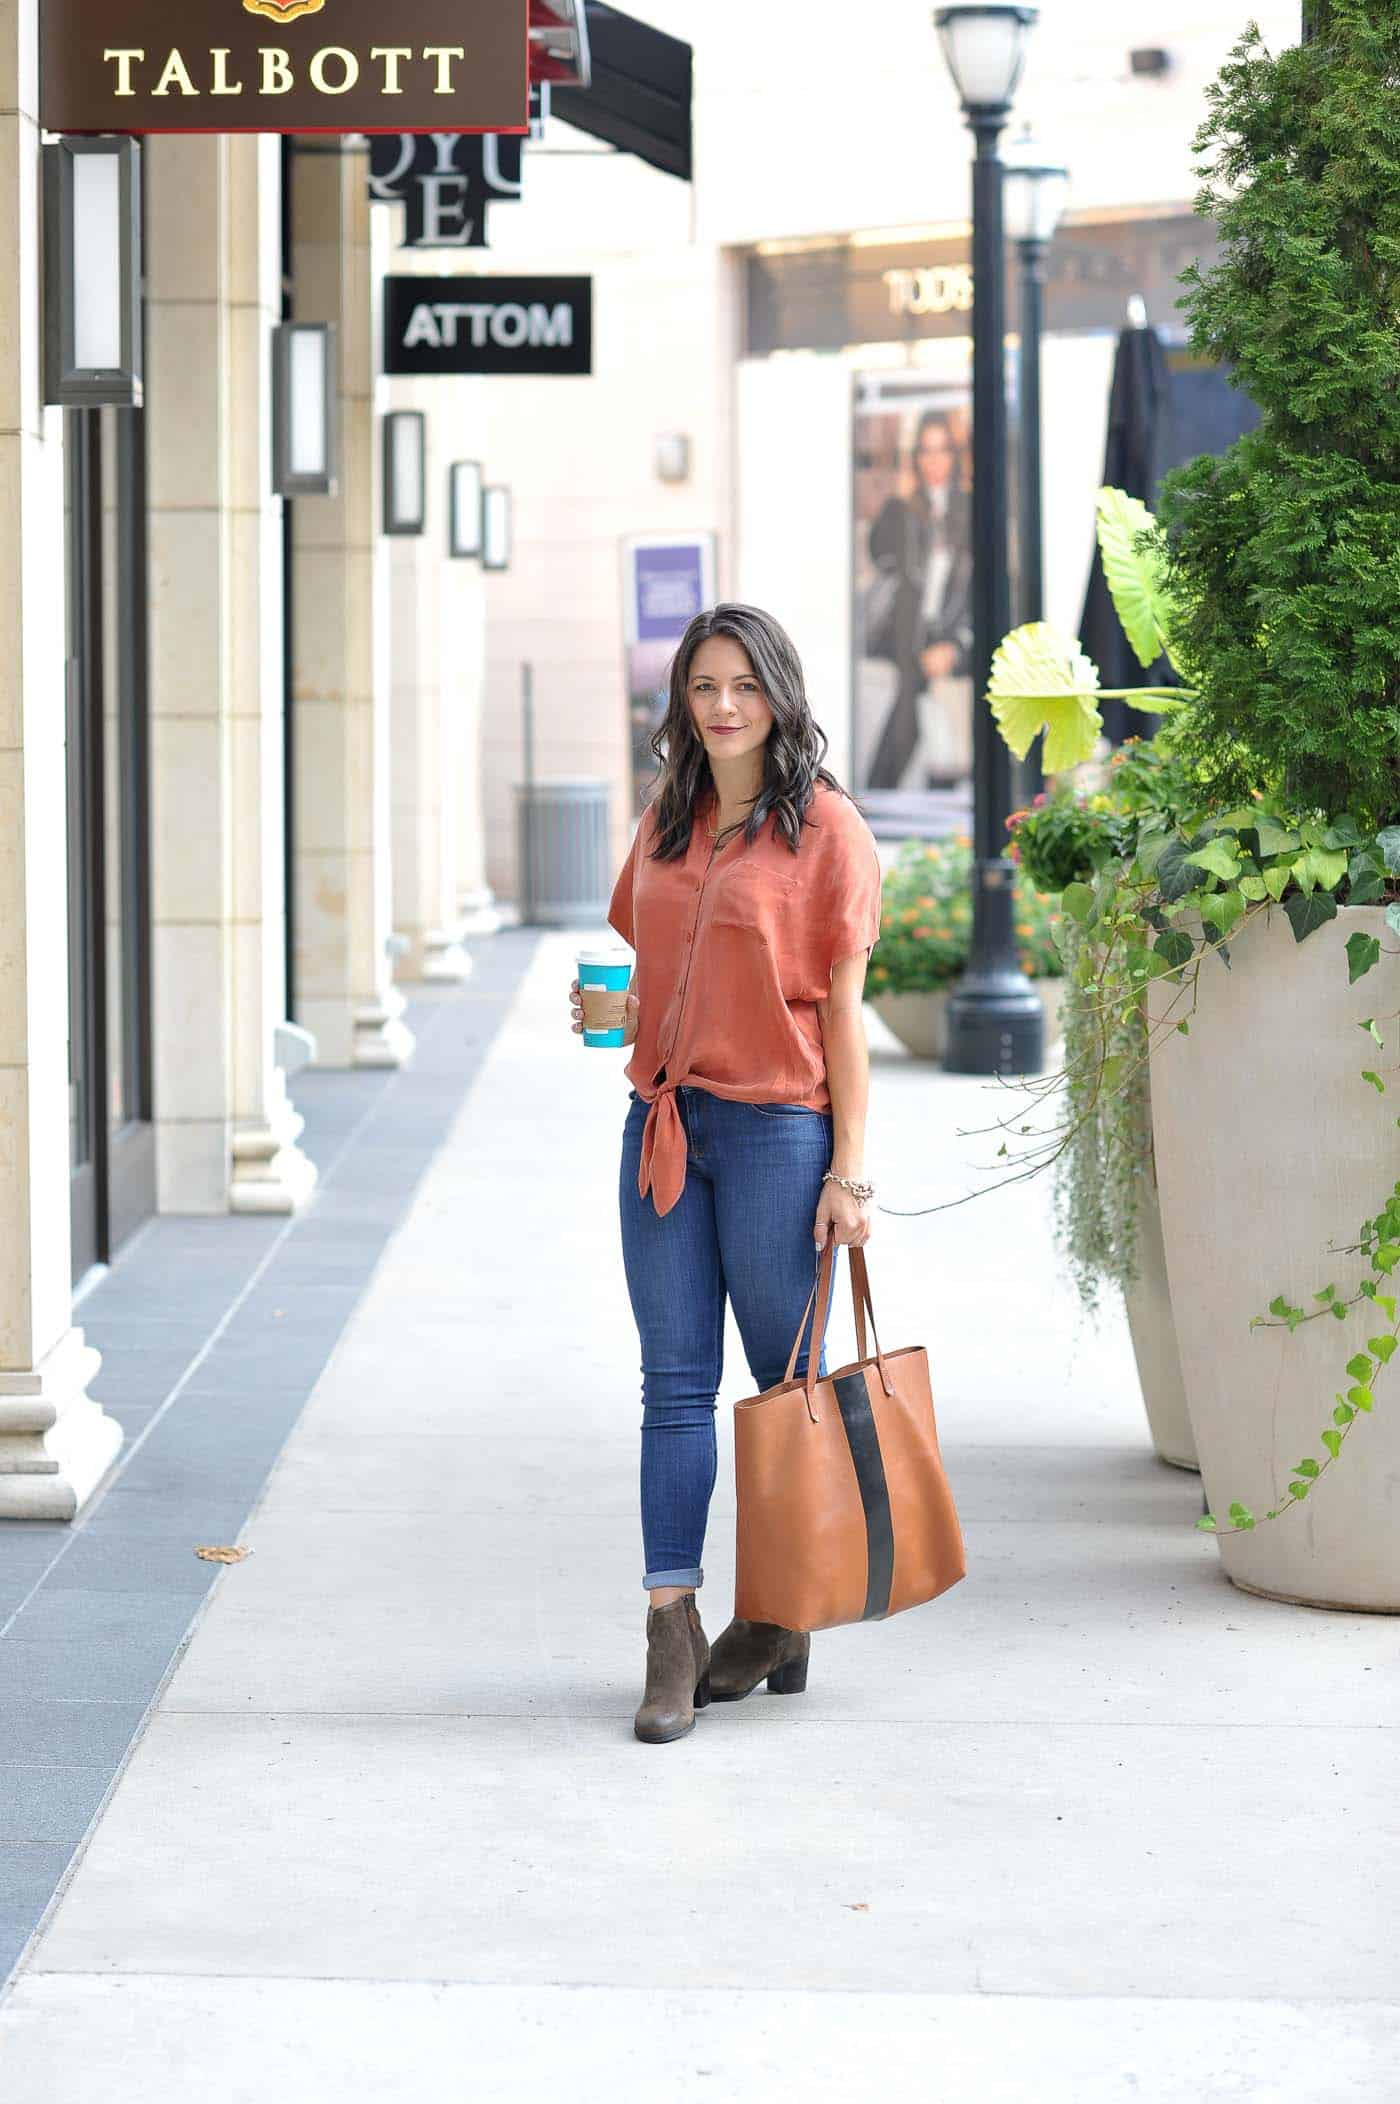 ... casual fall outfit ideas, fall fashion, comfortable boots - My Style  Vita @mystylevita ...